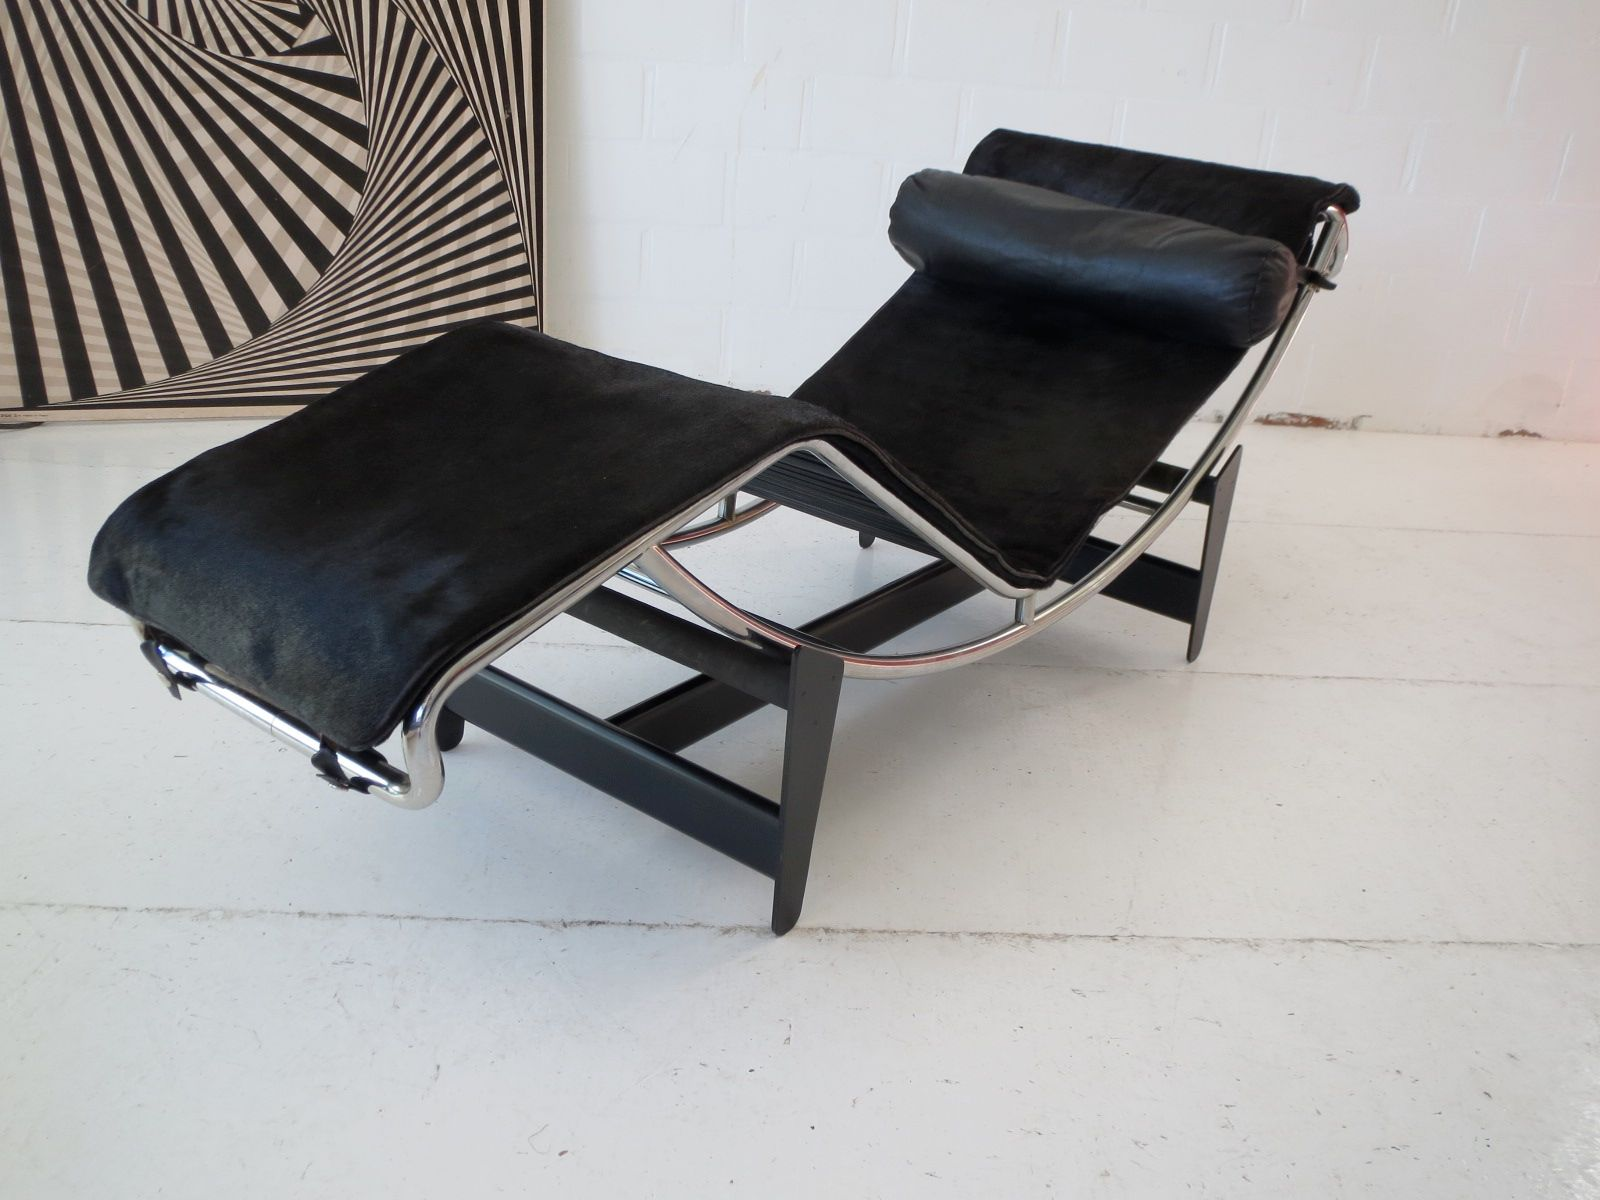 Early under 750 numbered lc4 chaise longue by le for Cassina le corbusier lc4 chaise longue